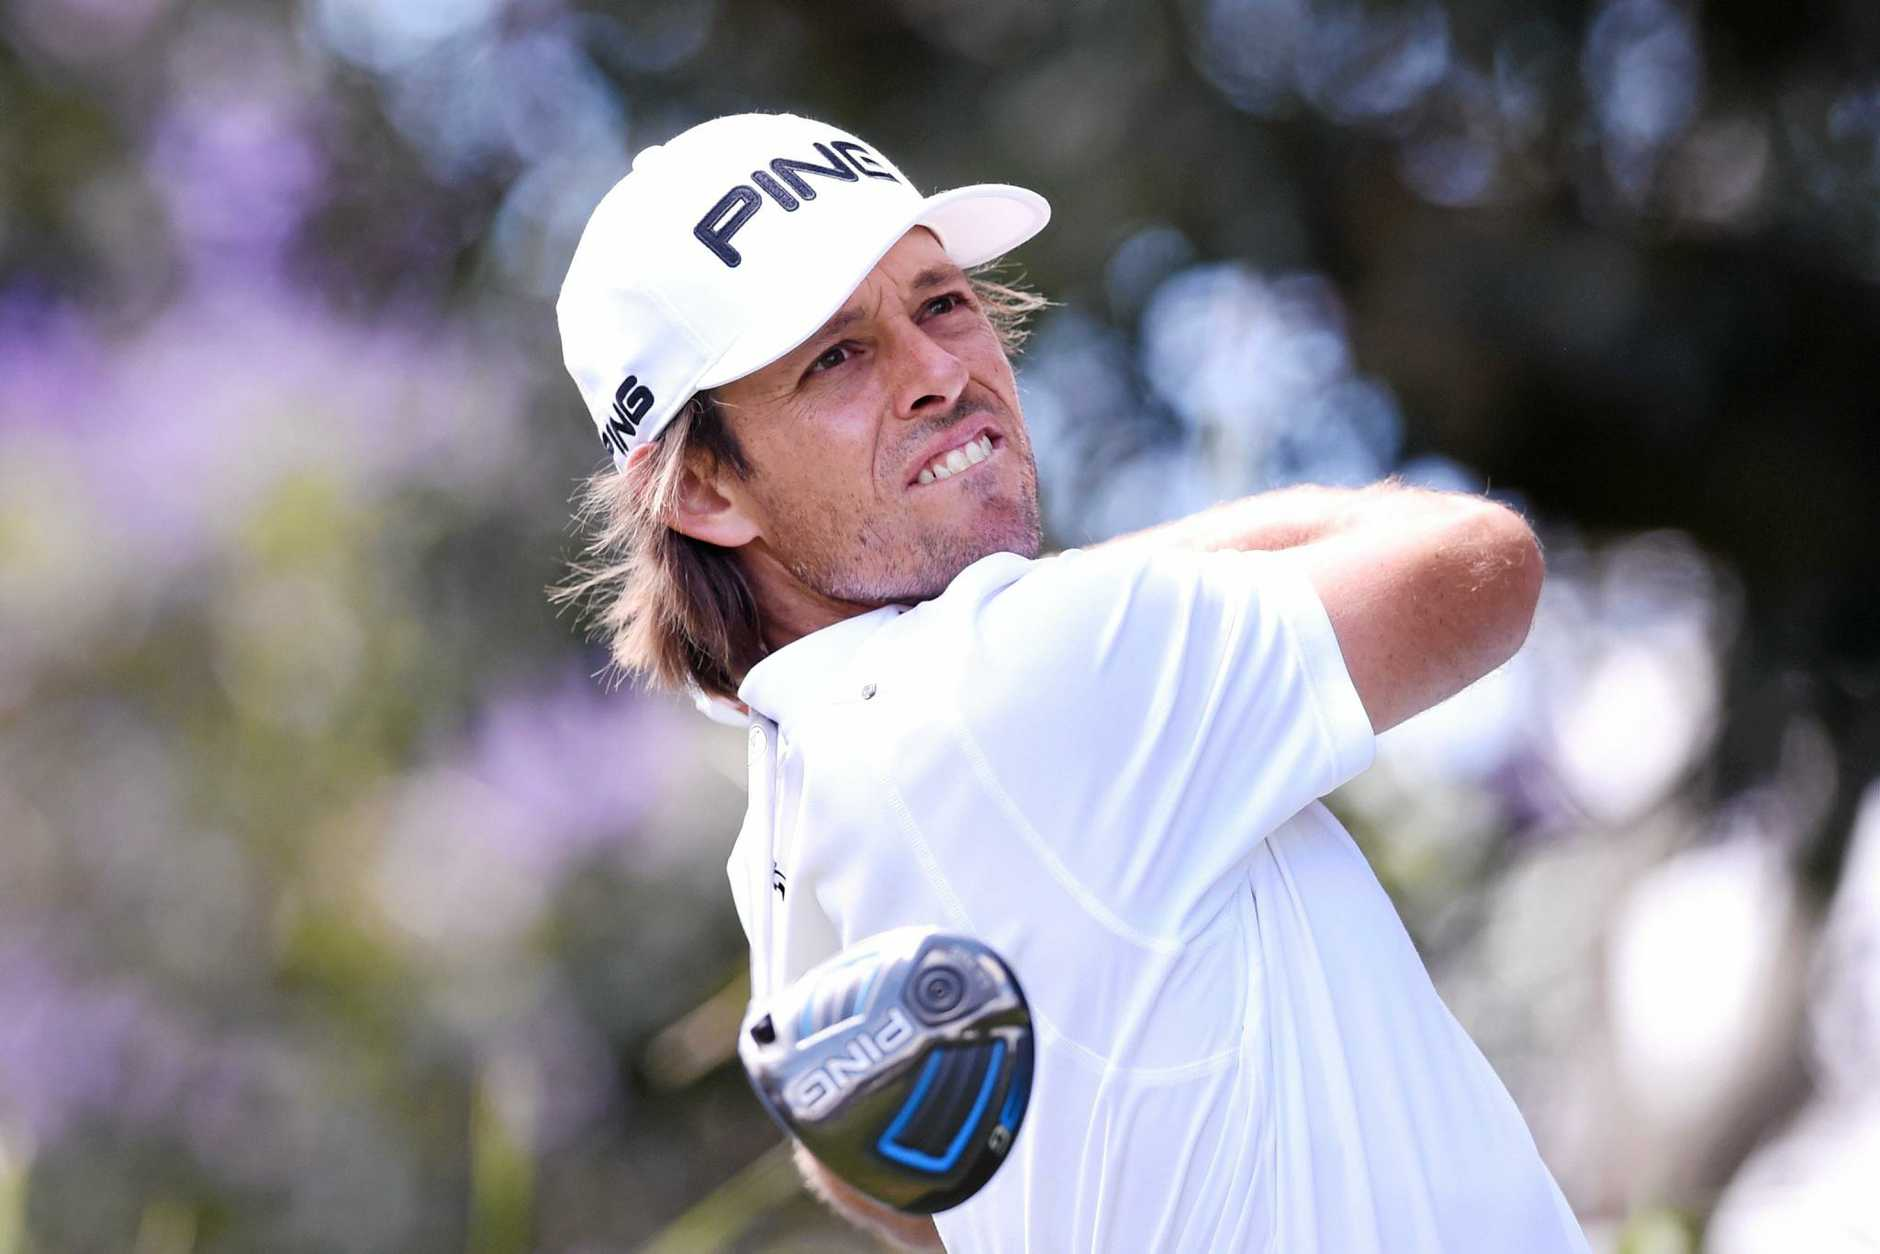 Australian Aaron Baddeley tees off on the second hole during the pro-am for the Australian Open at Royal Sydney.